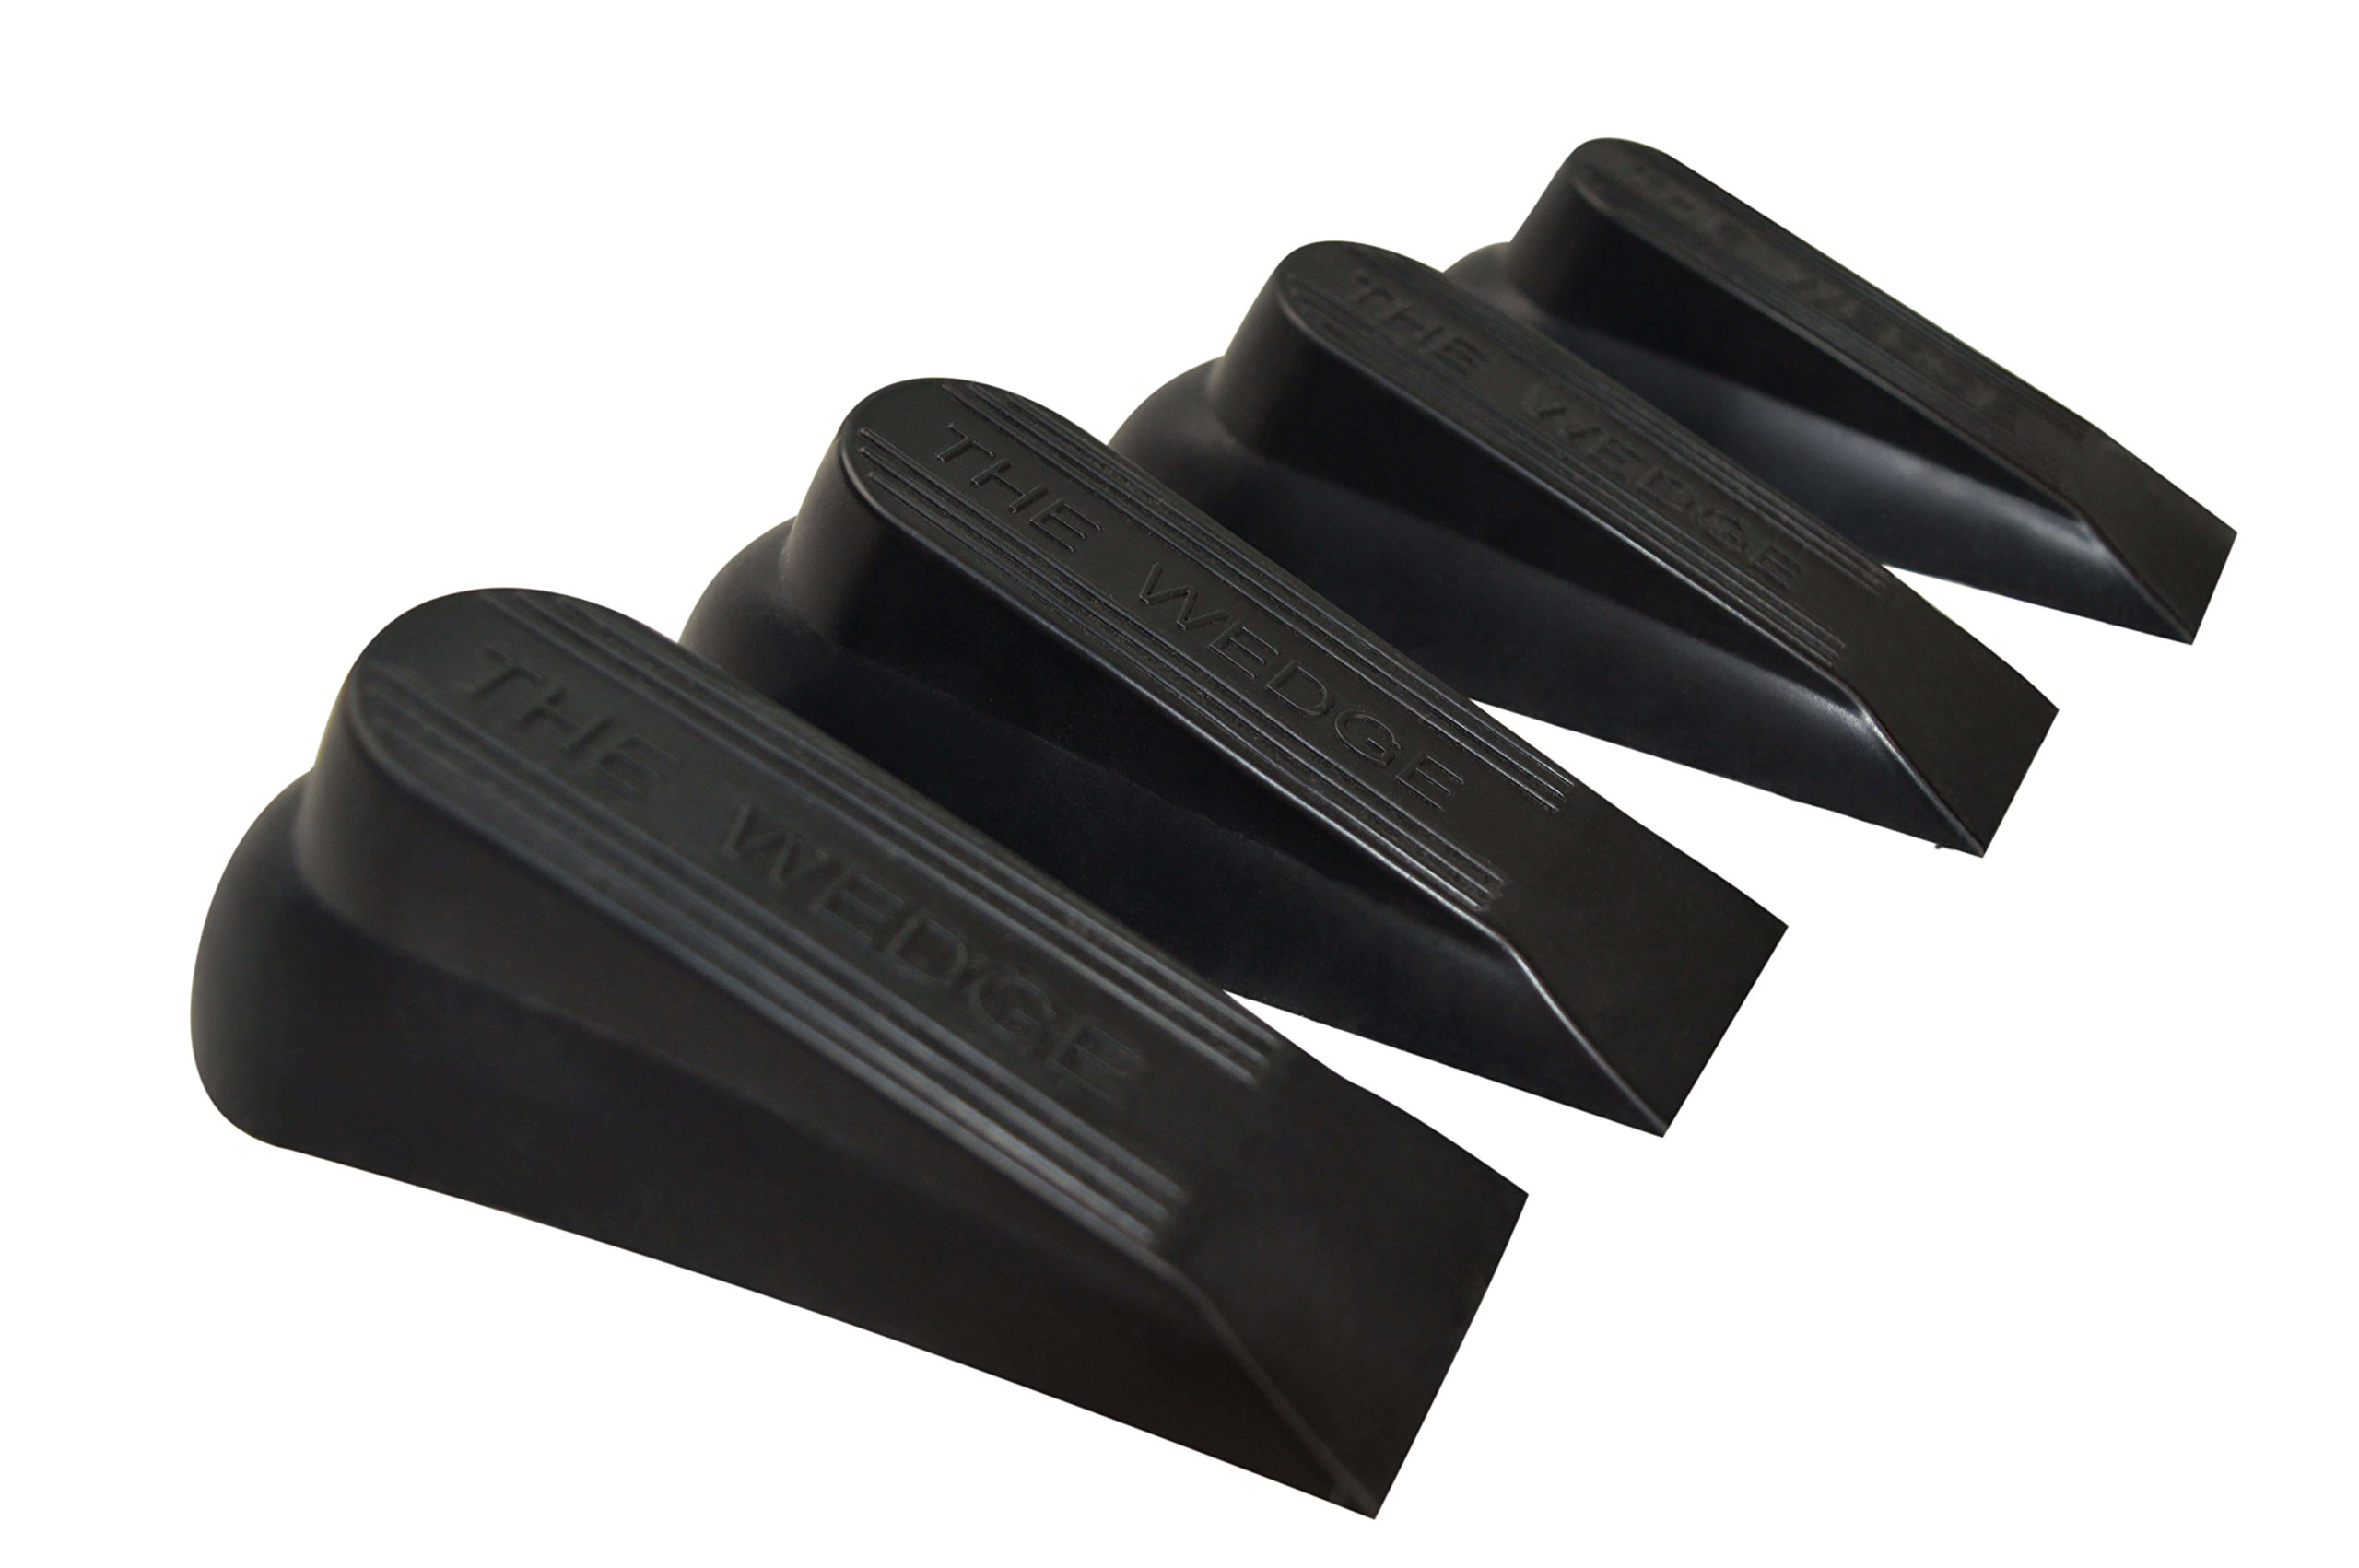 Door Stop | 4 Pack | Flexible Black Rubber Door Stopper Easily Wedges Door Gaps up to 1.6 Inches | Baltic Living Doorstop (Black)